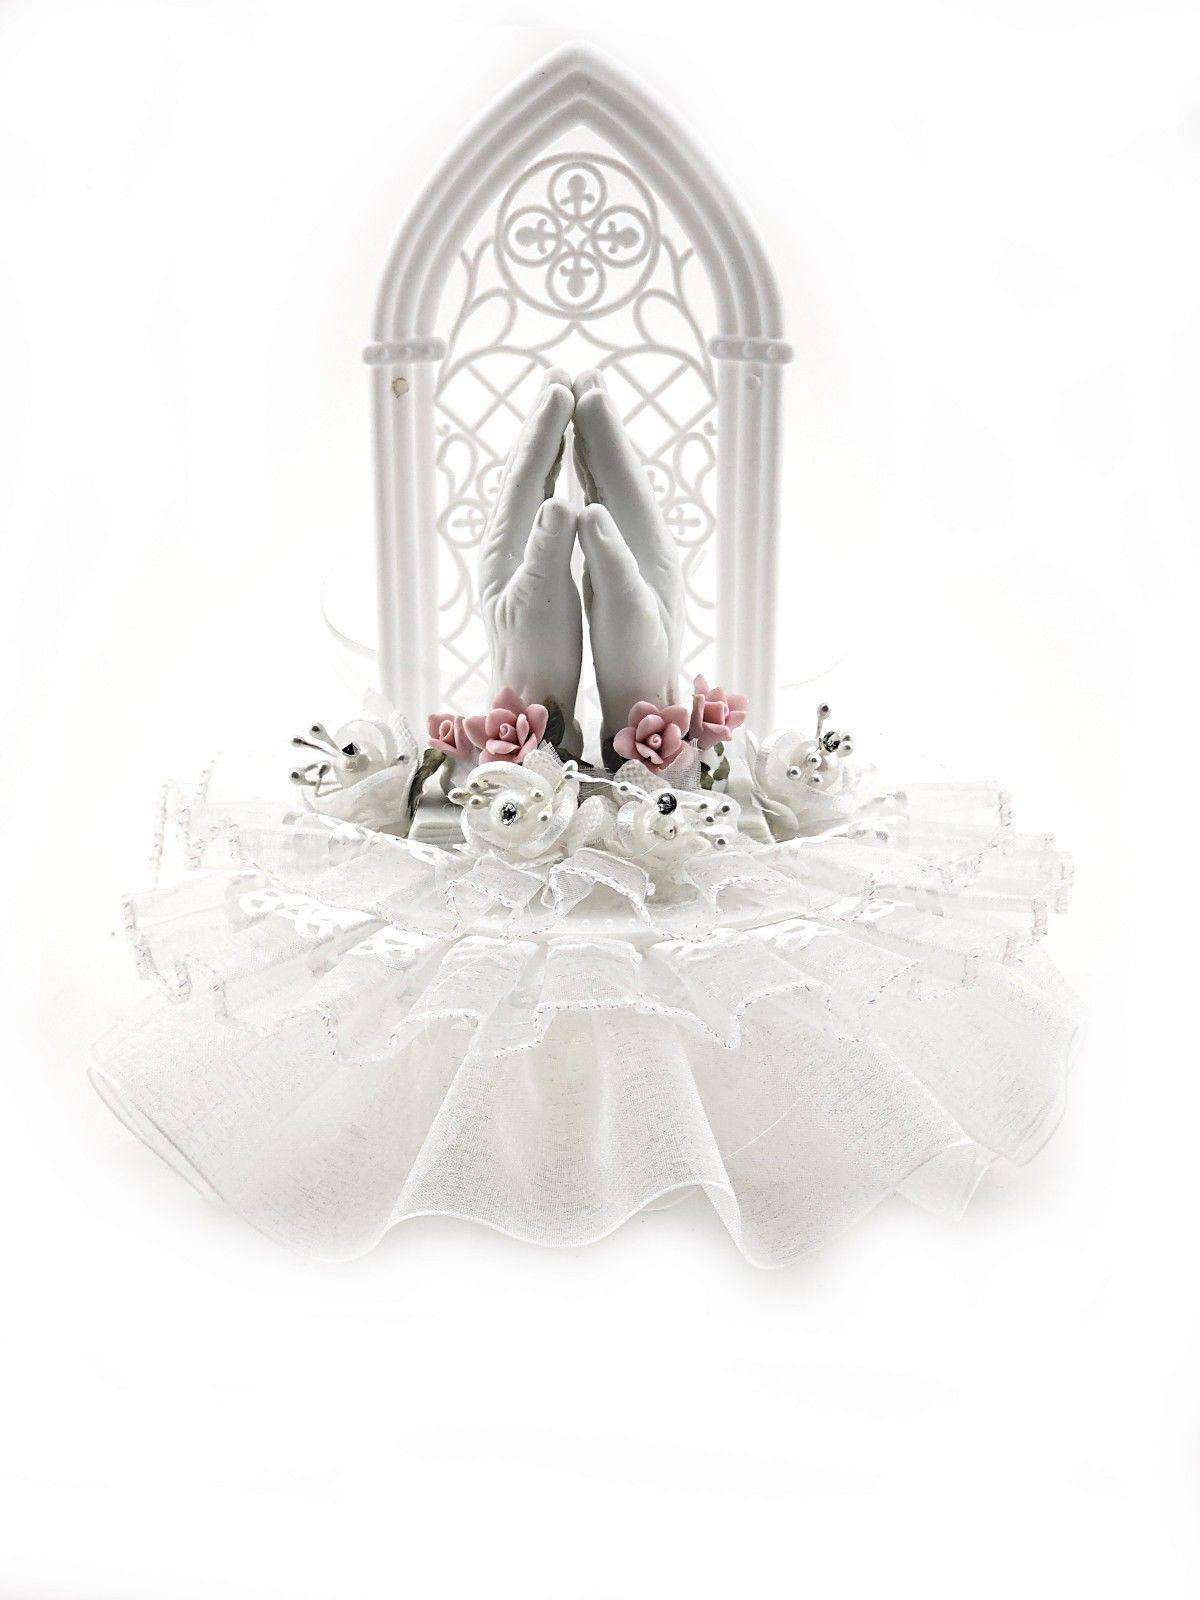 Communion/Christening Praying Hands Cake Top with Lace Trim and Silk Flowers All